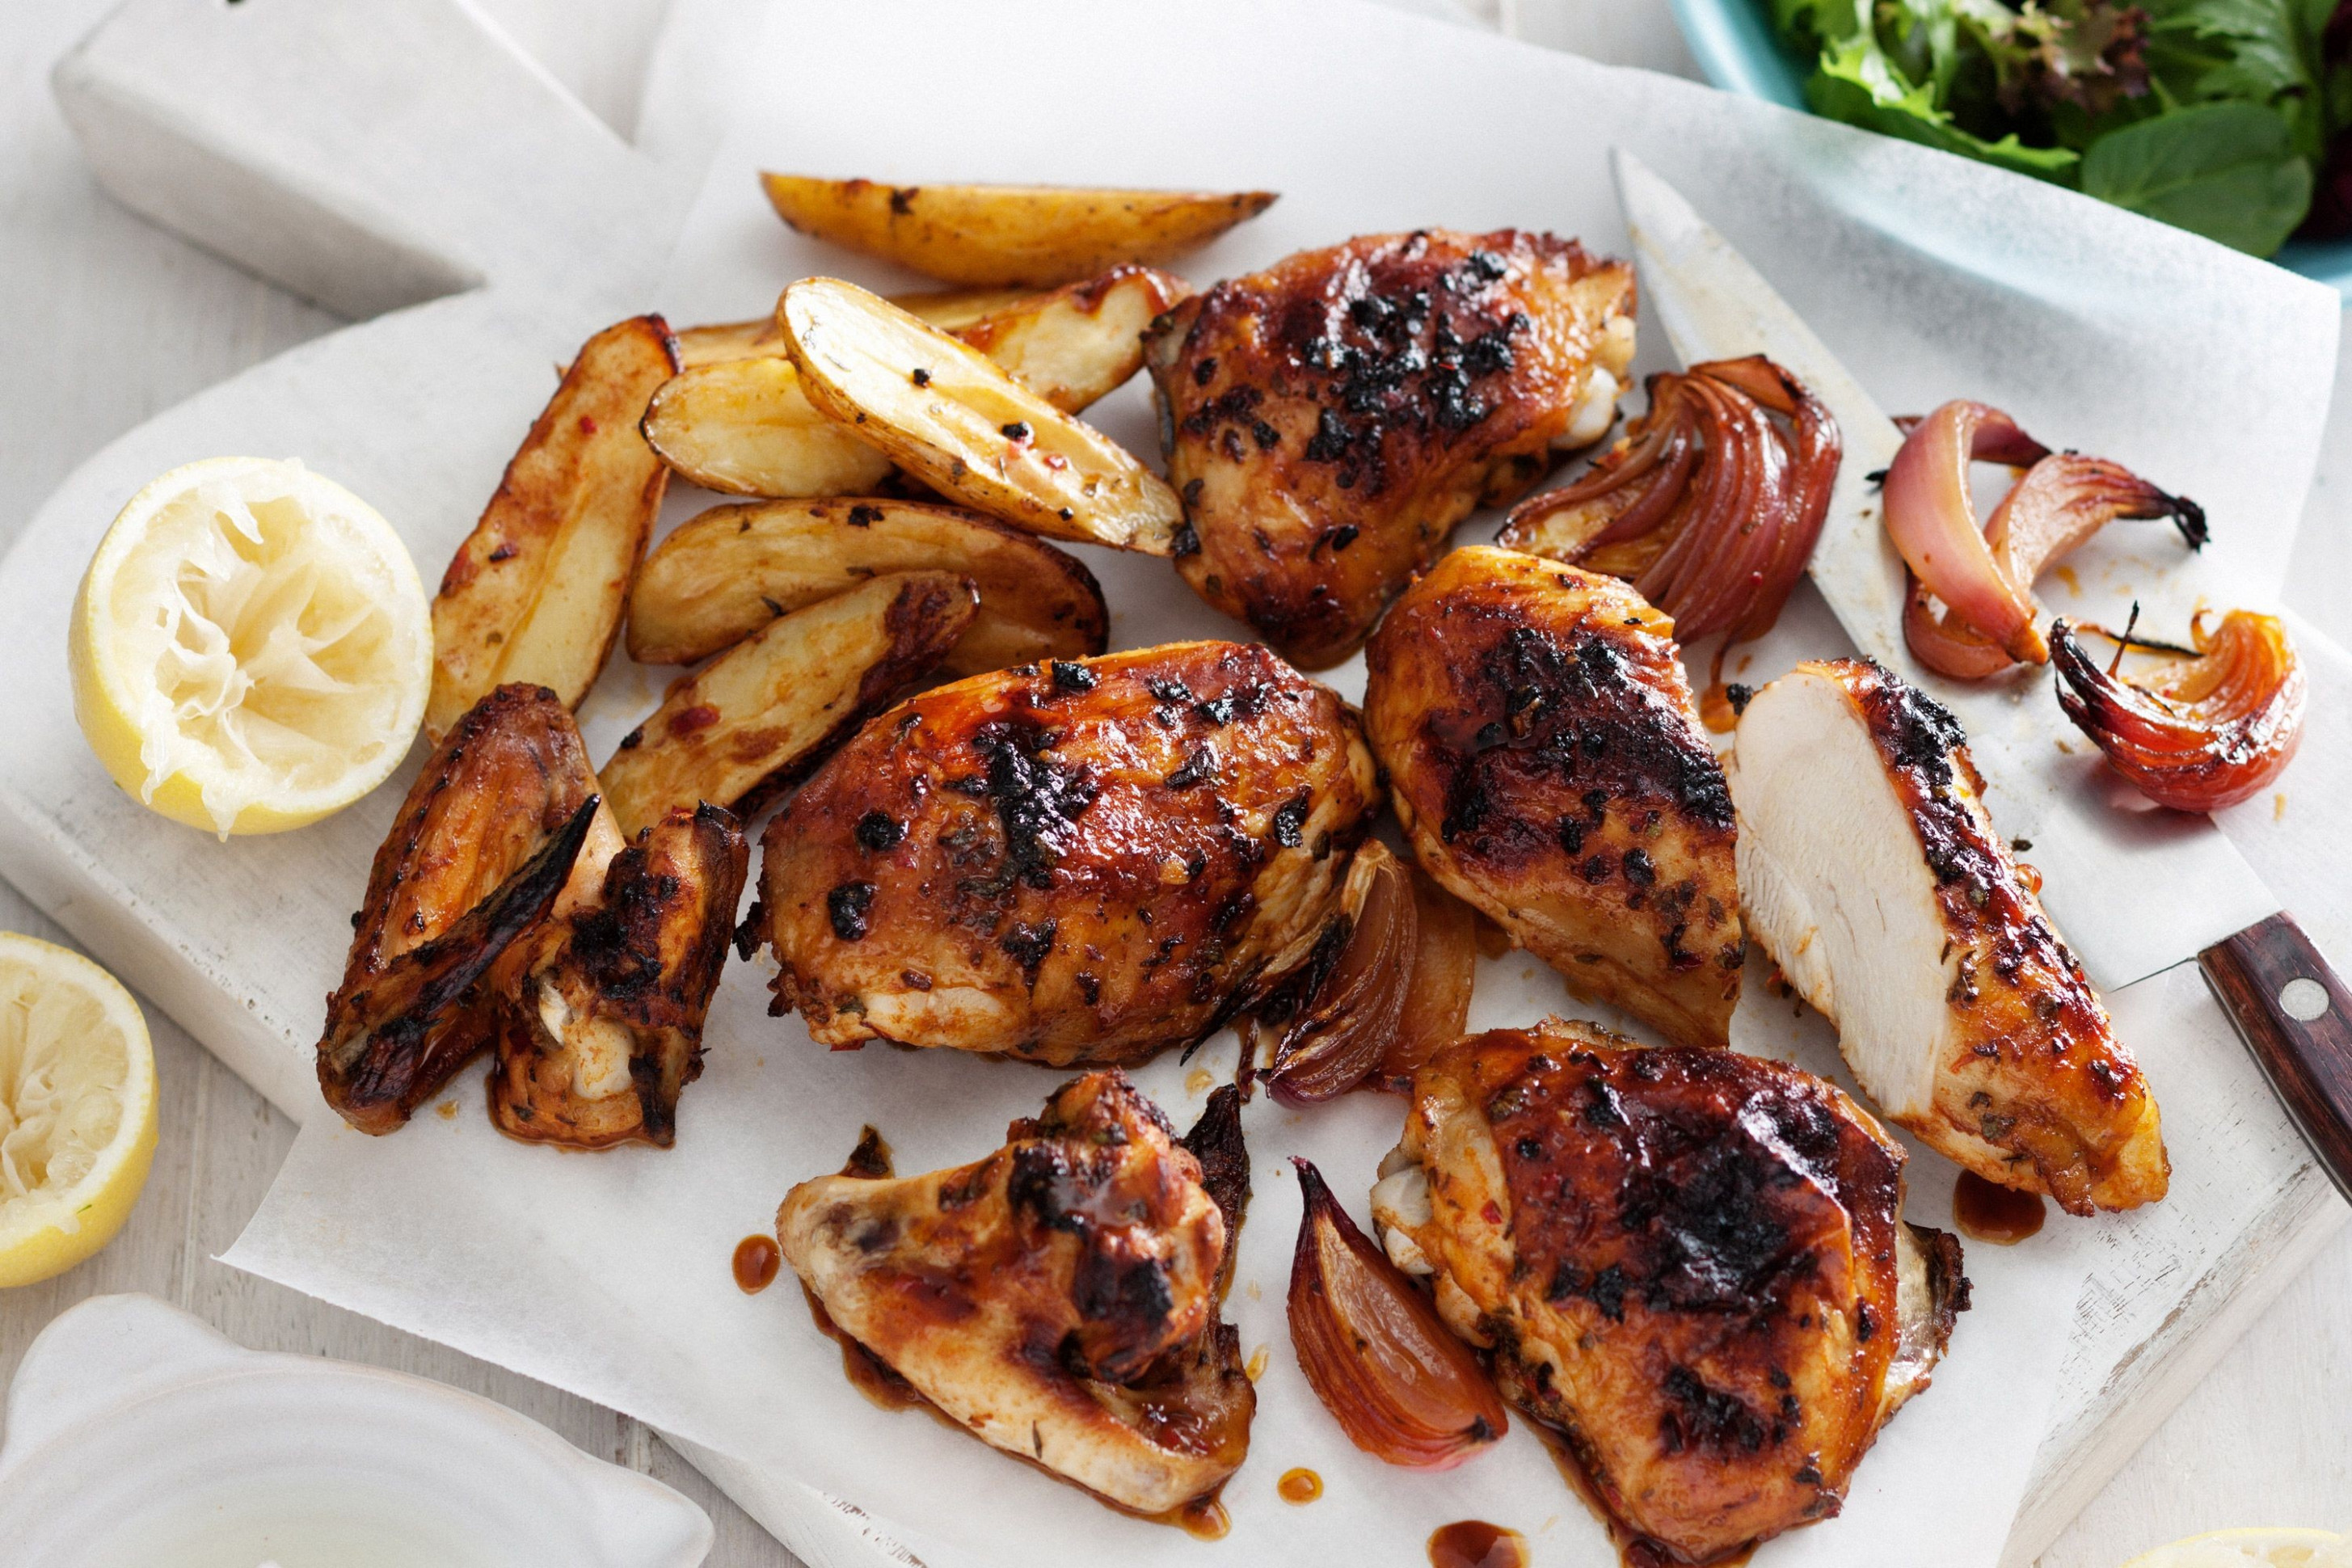 Portuguese-style roast chicken pieces